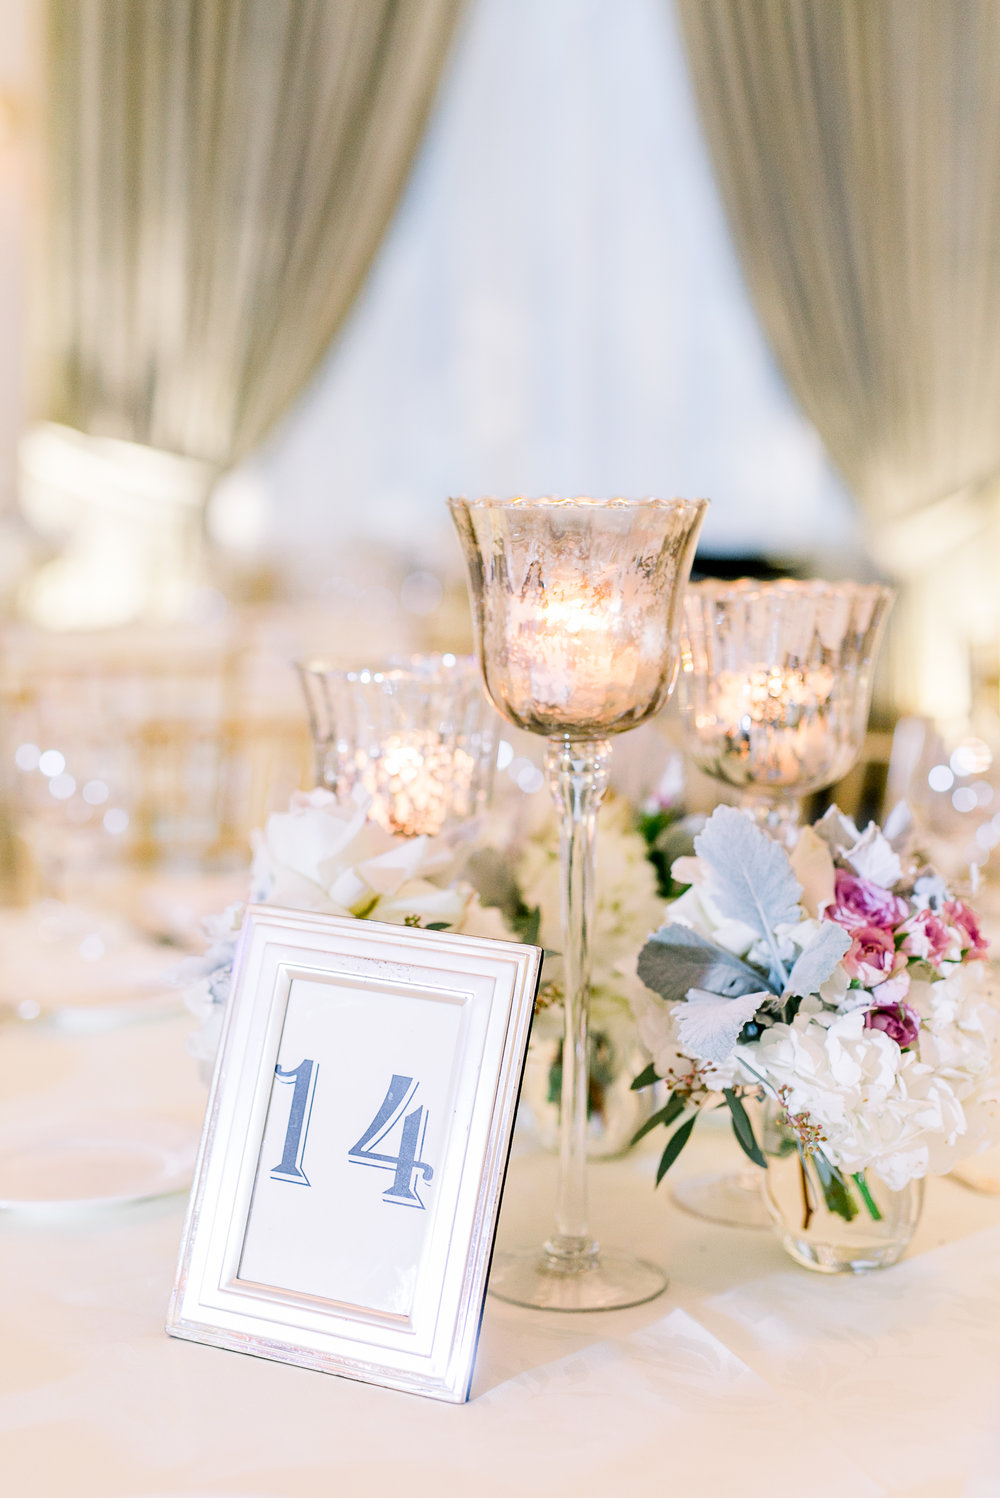 Blue and gold table numbers, trio candle centerpiece with floral